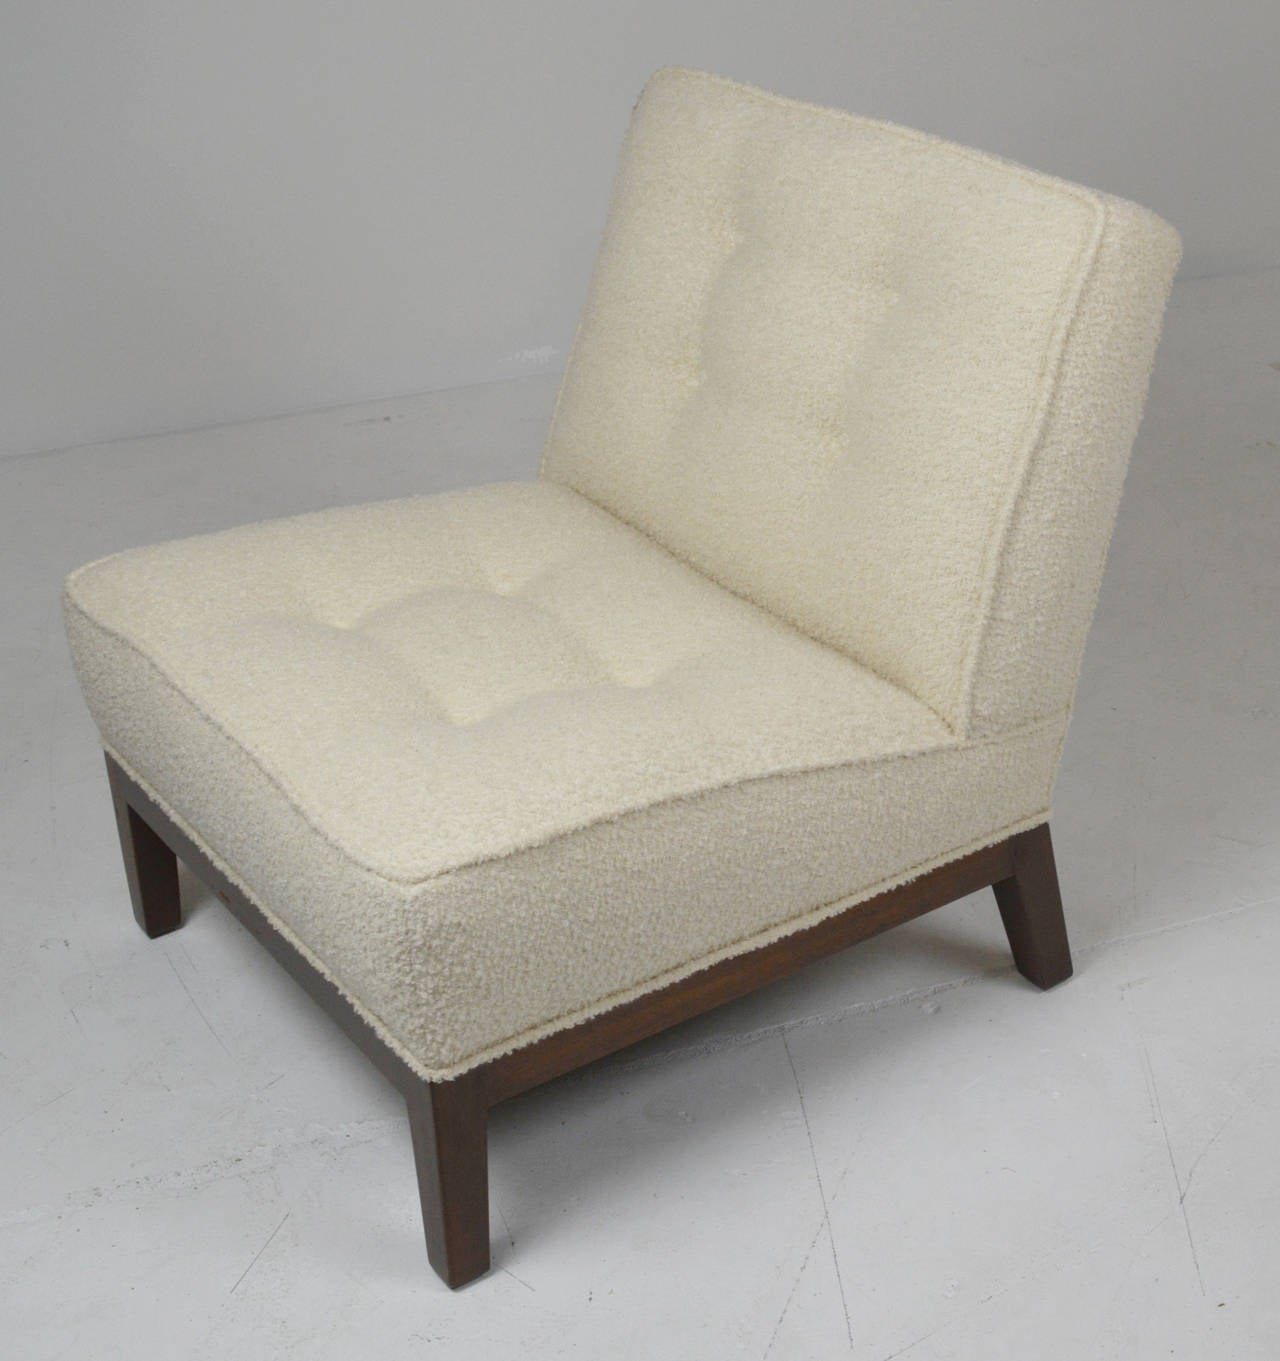 slipper chair by Edward Wormley for Dubar. Button tufted tight seat and back in ivory boucle. Wood base refinished in dark walnut